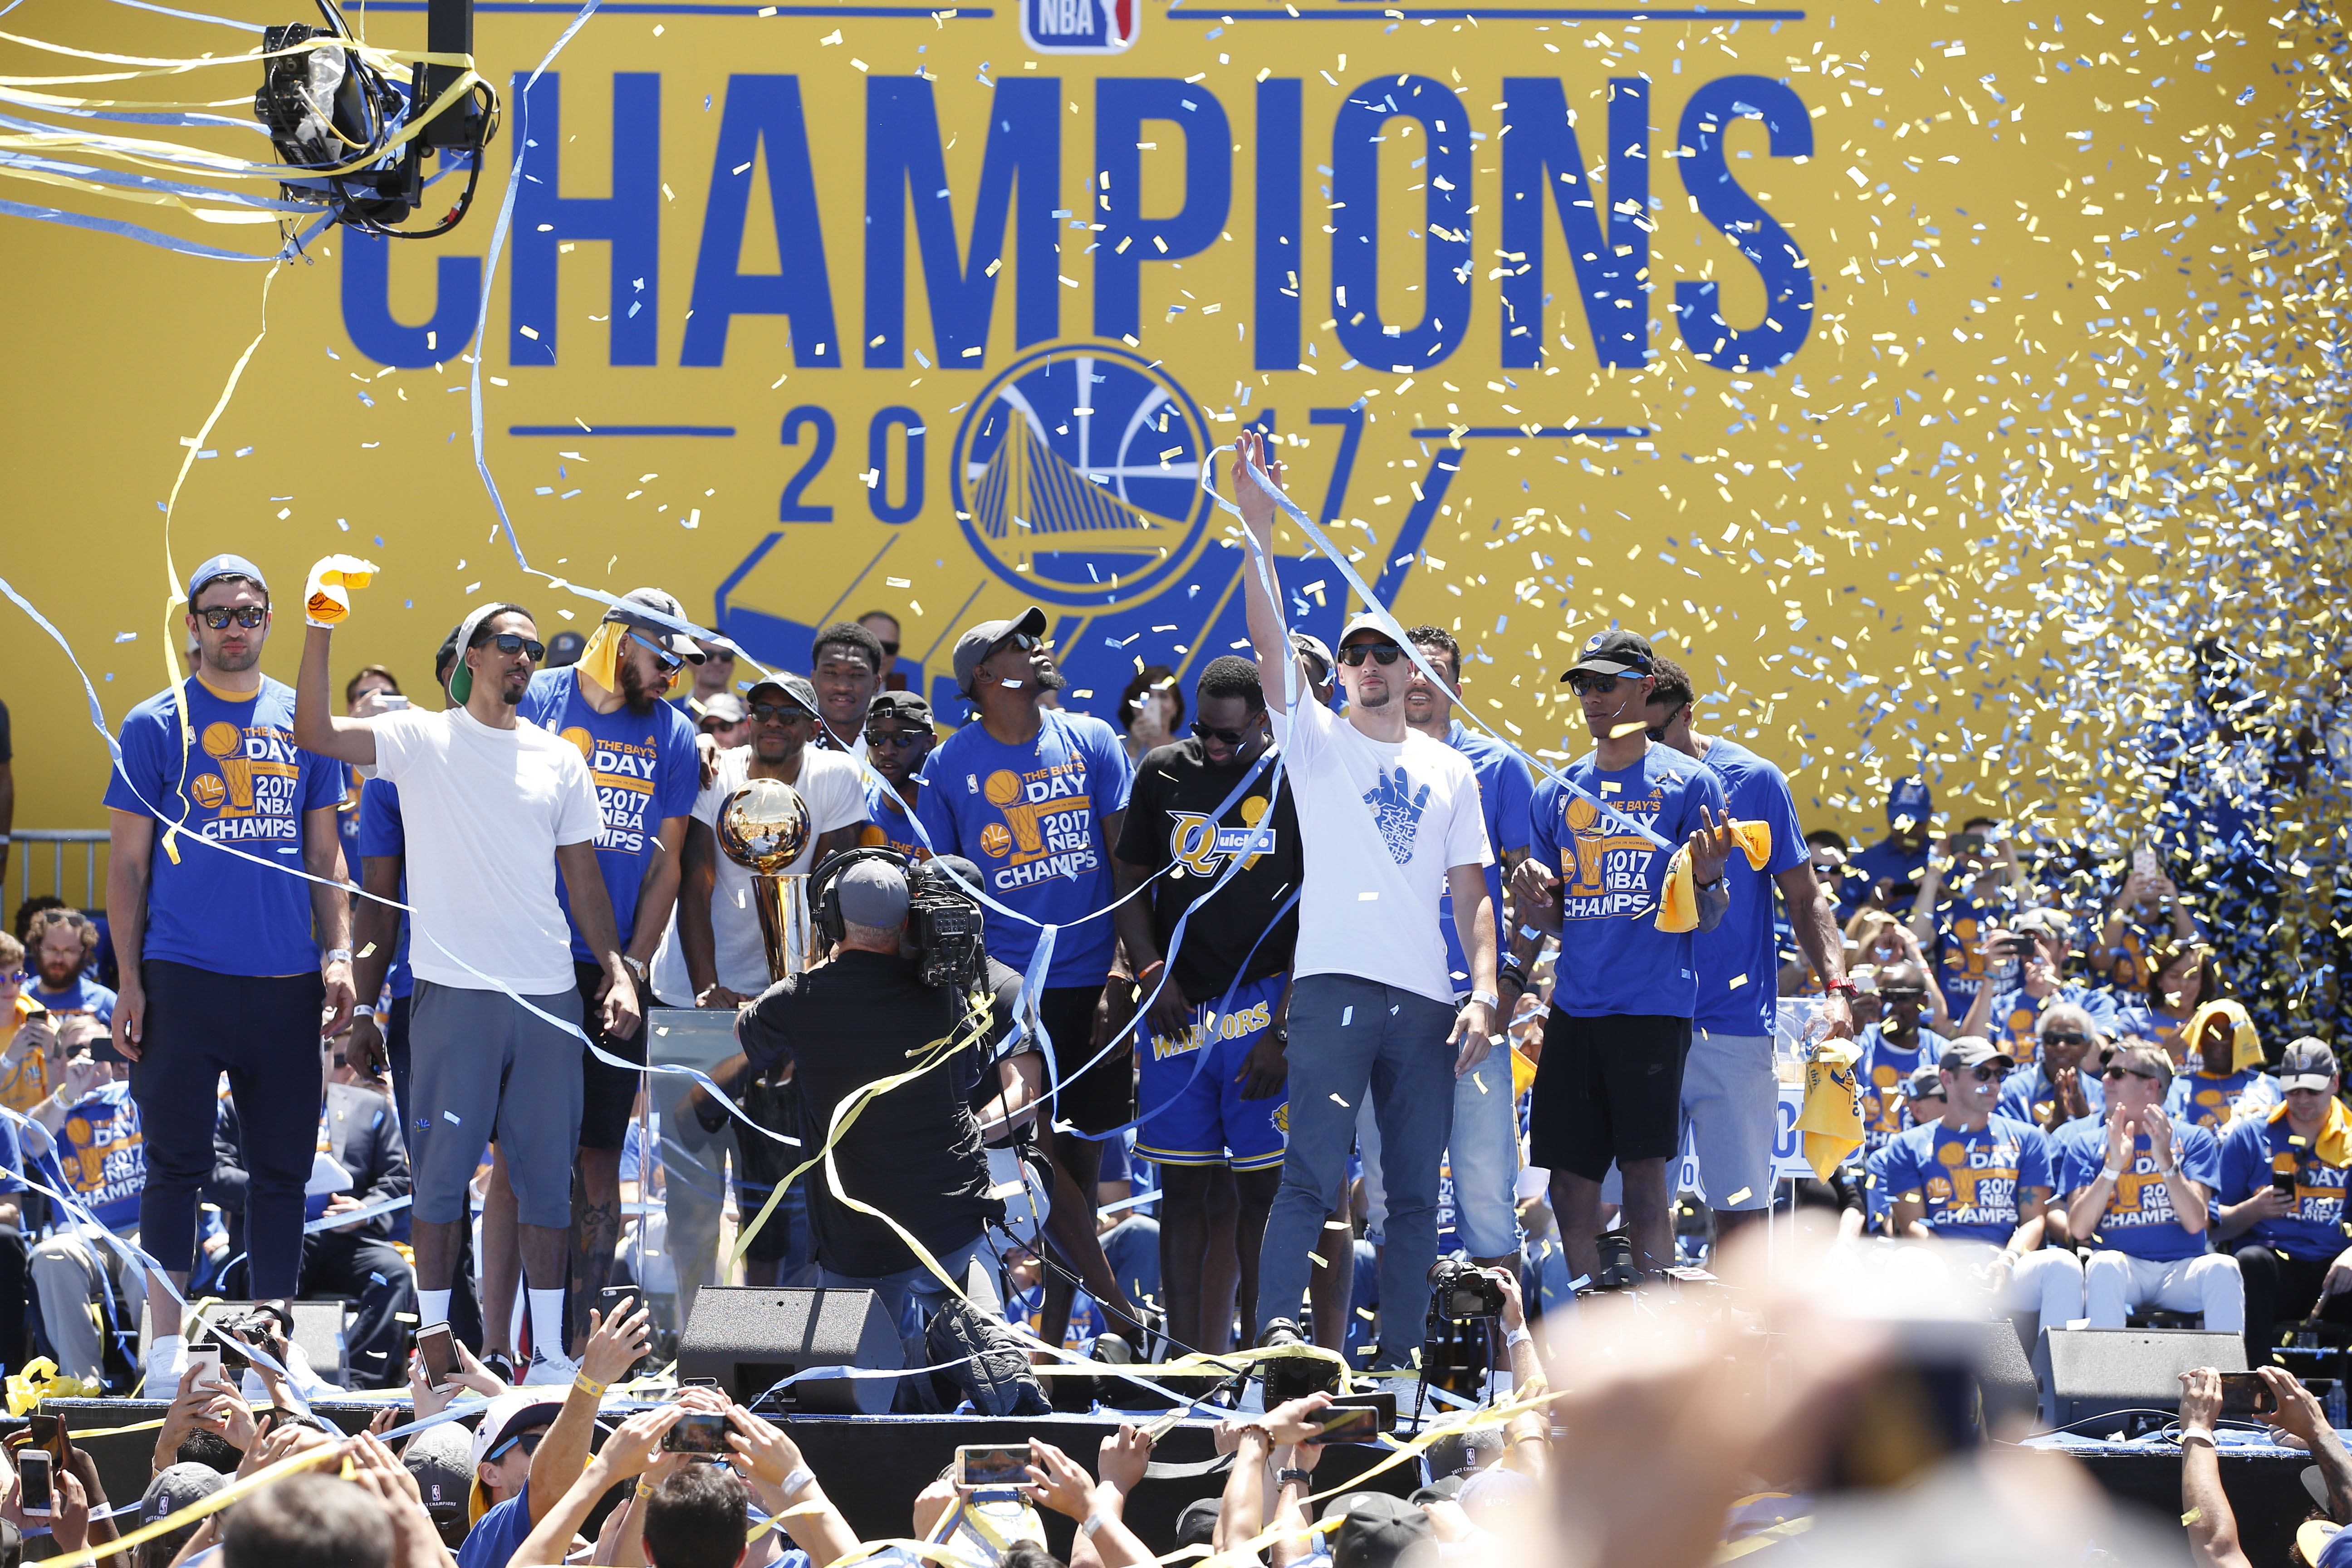 d3df20b9c9d Golden State Warriors  5 ring-chasers to target in 2017 NBA free agency